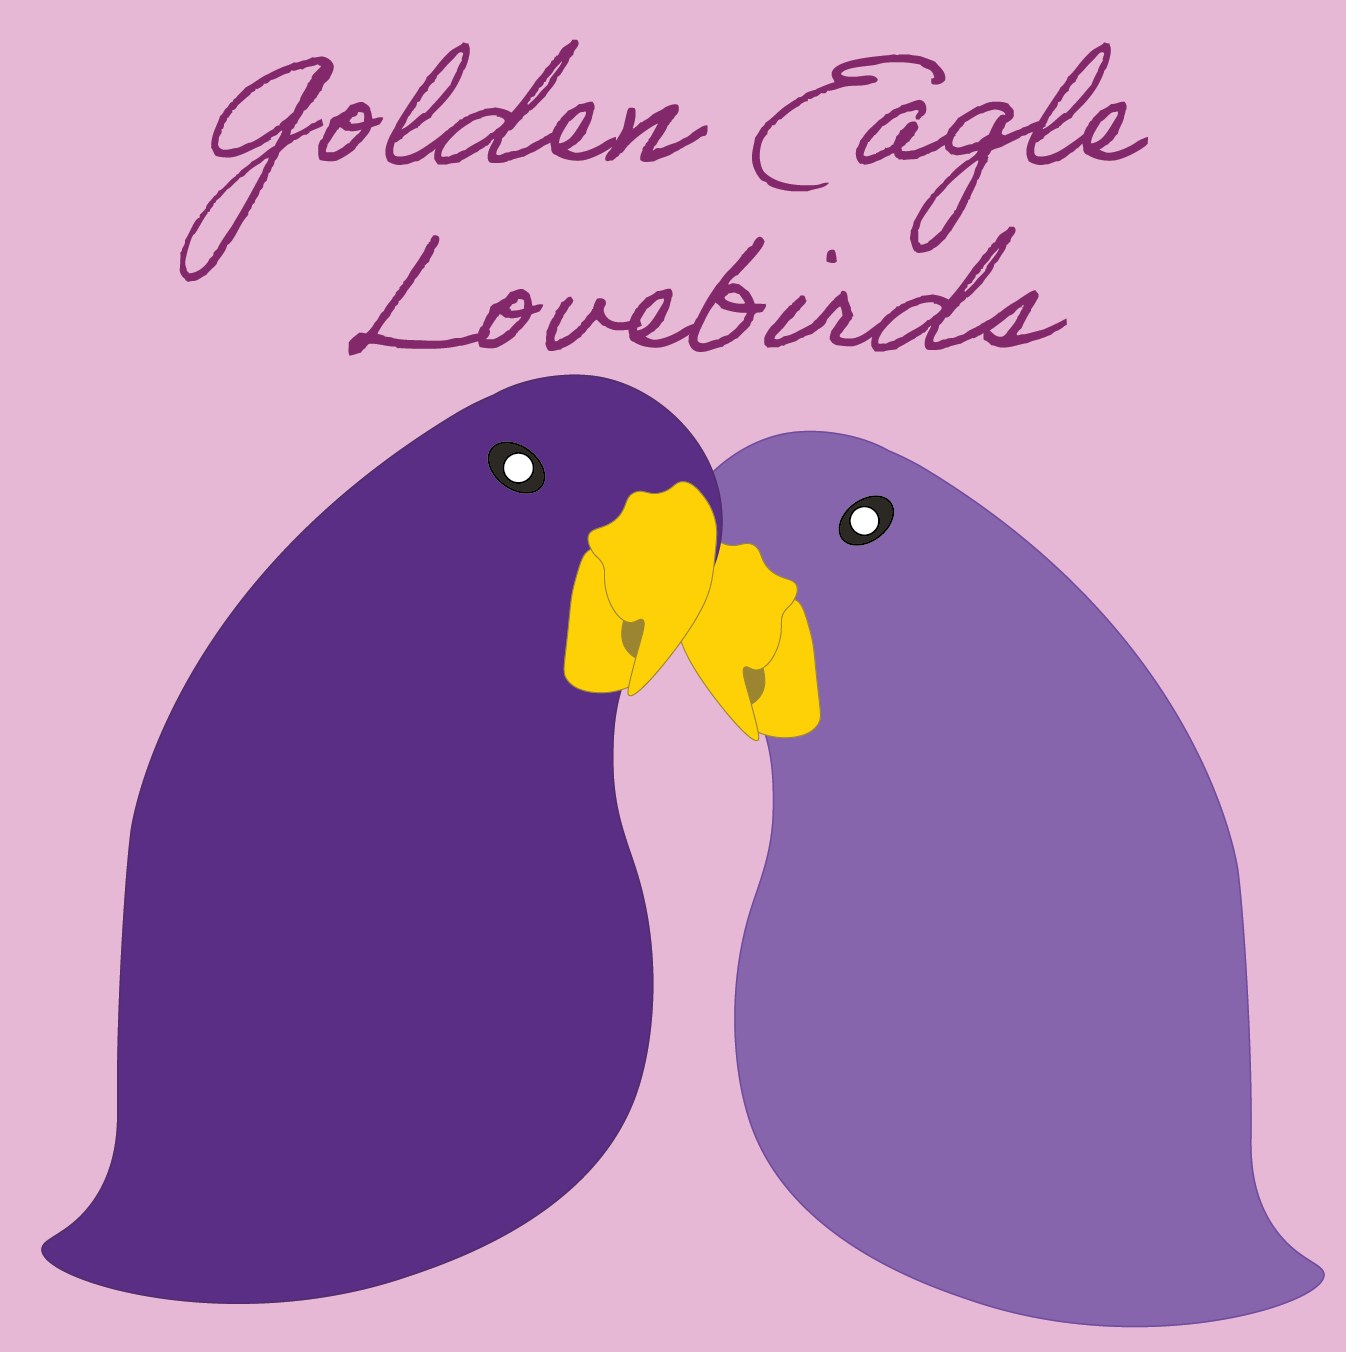 Two puple lovebirds have their heads together - Golden Eagle Lovebirds